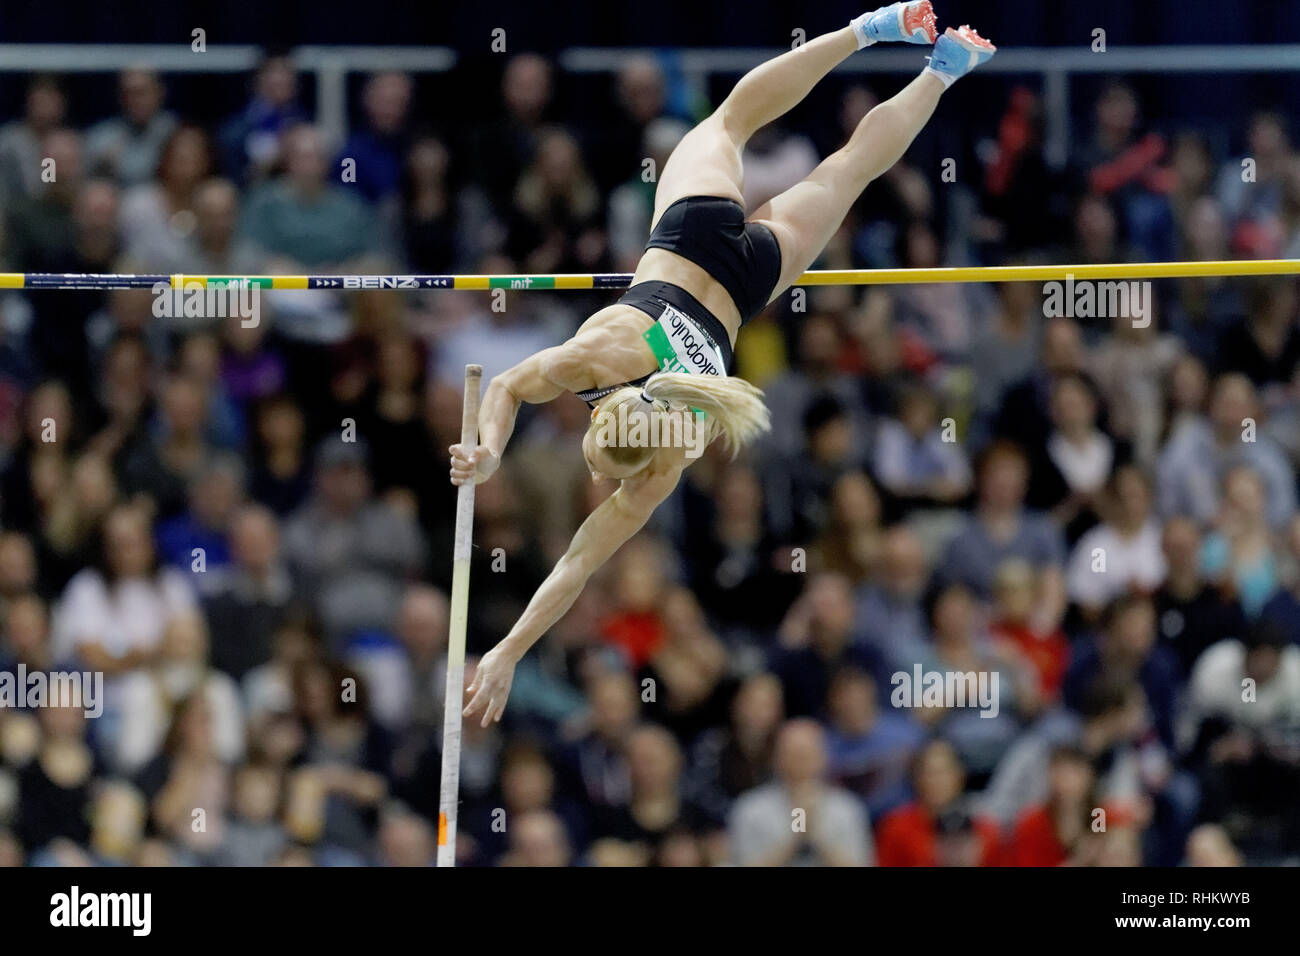 Nikoleta Kyriakopoulou, GRE, pole vault at the IAAF indoor Meeting Karlsruhe 2019 Stock Photo